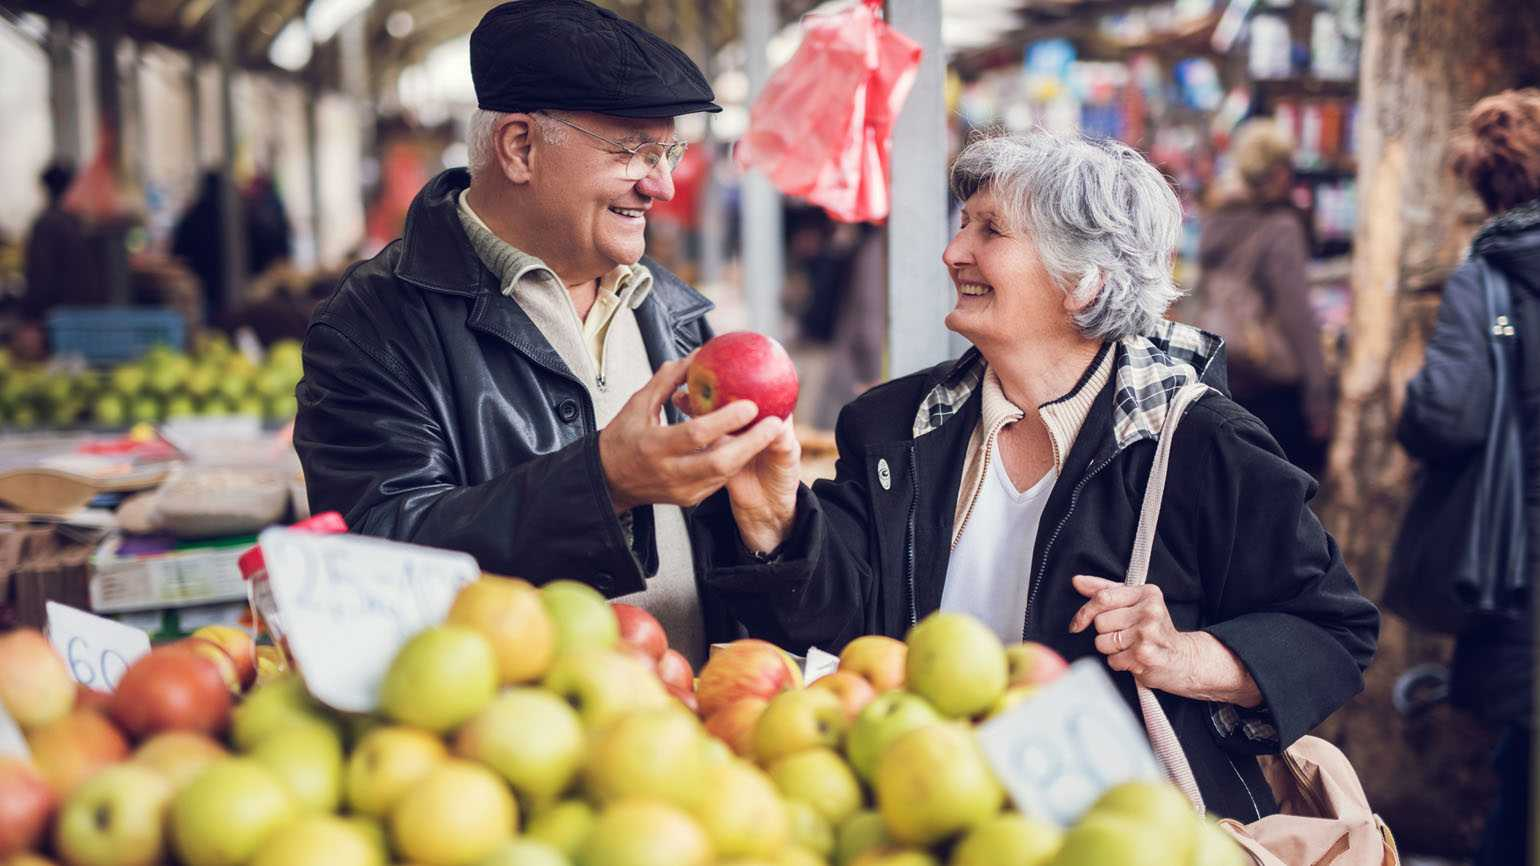 A couple in their golden years shopping at the farmer's market.